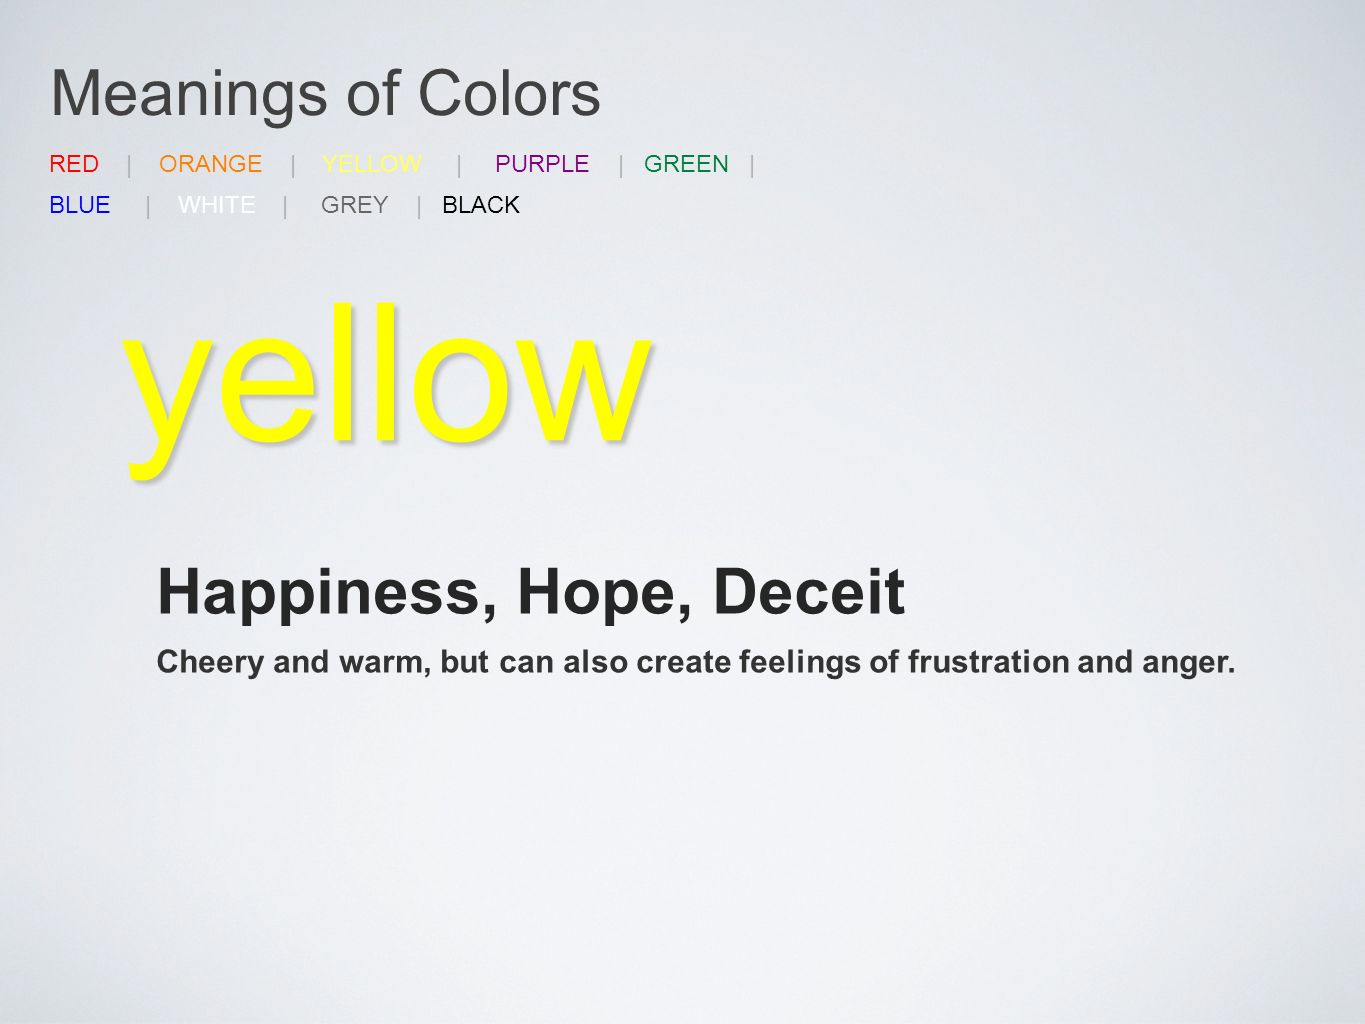 Meanings of Colors yellow Happiness, Hope, Deceit Cheery and warm, but can also create feelings of frustration and anger.